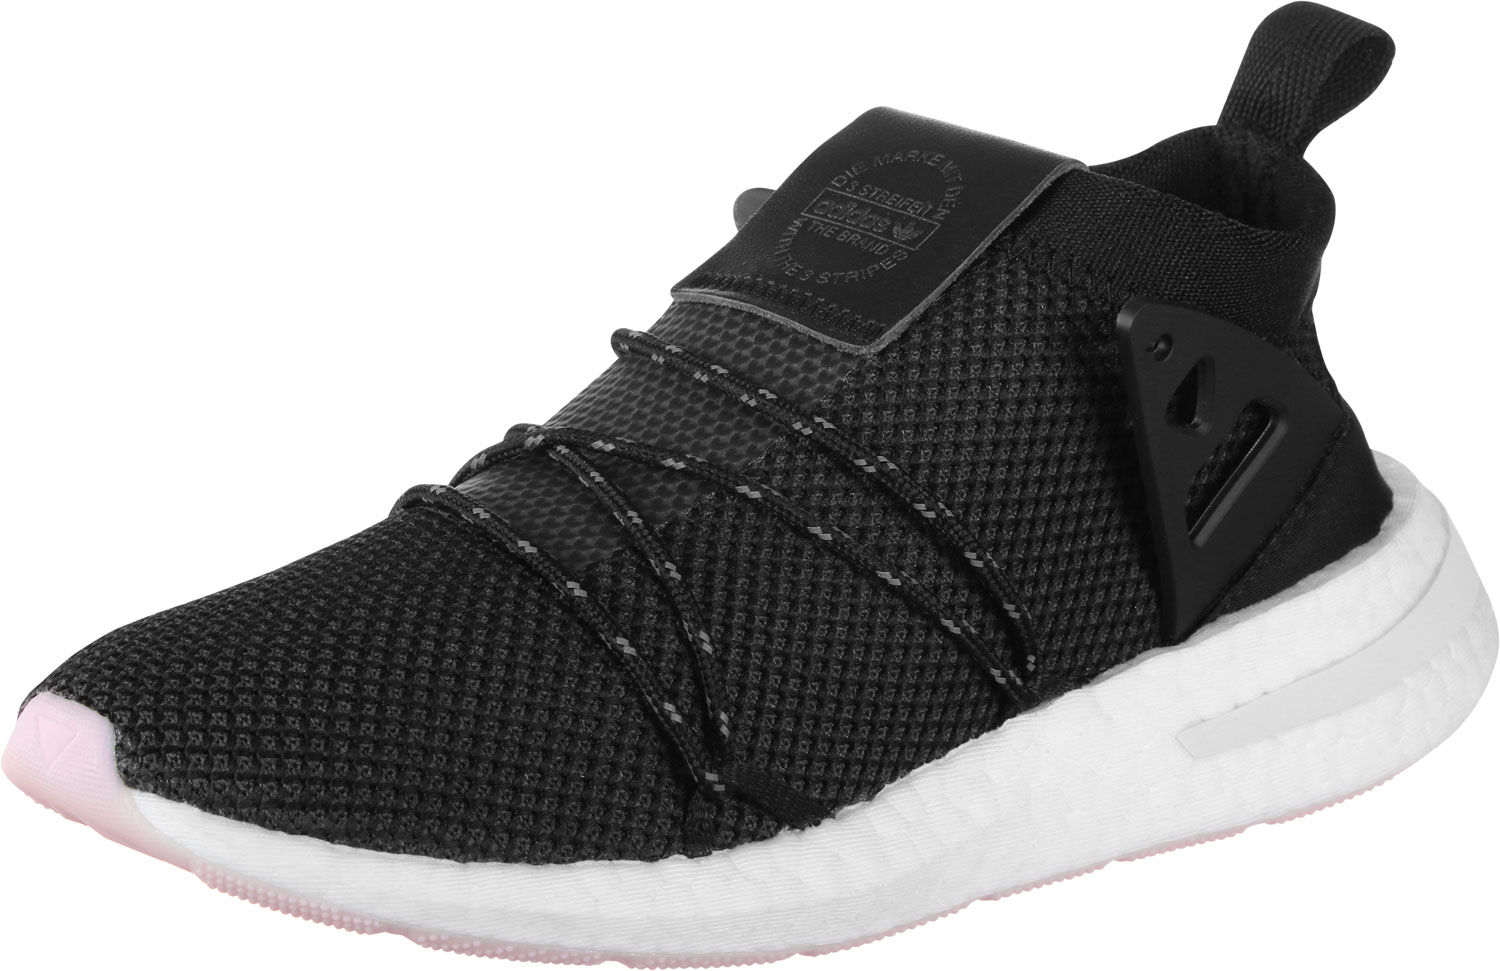 adidas Arkyn Knit W - Sneakers Low at